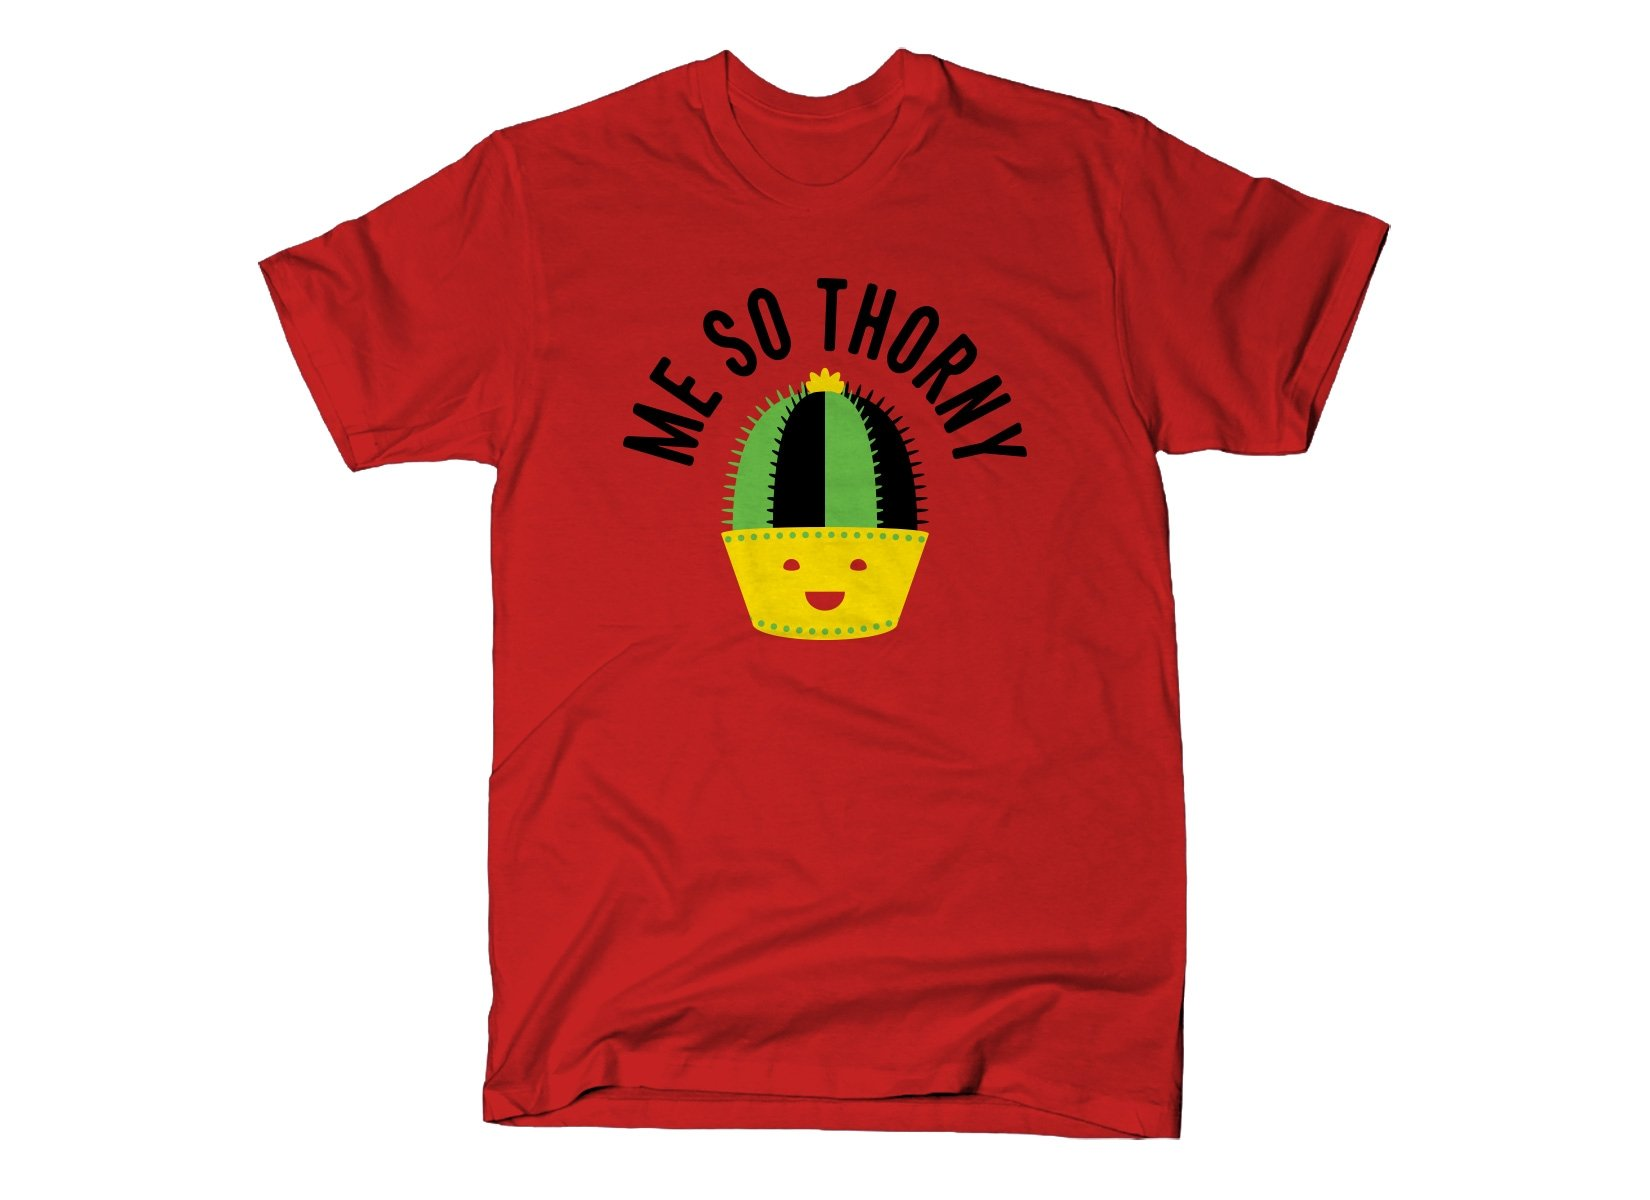 Me So Thorny on Mens T-Shirt